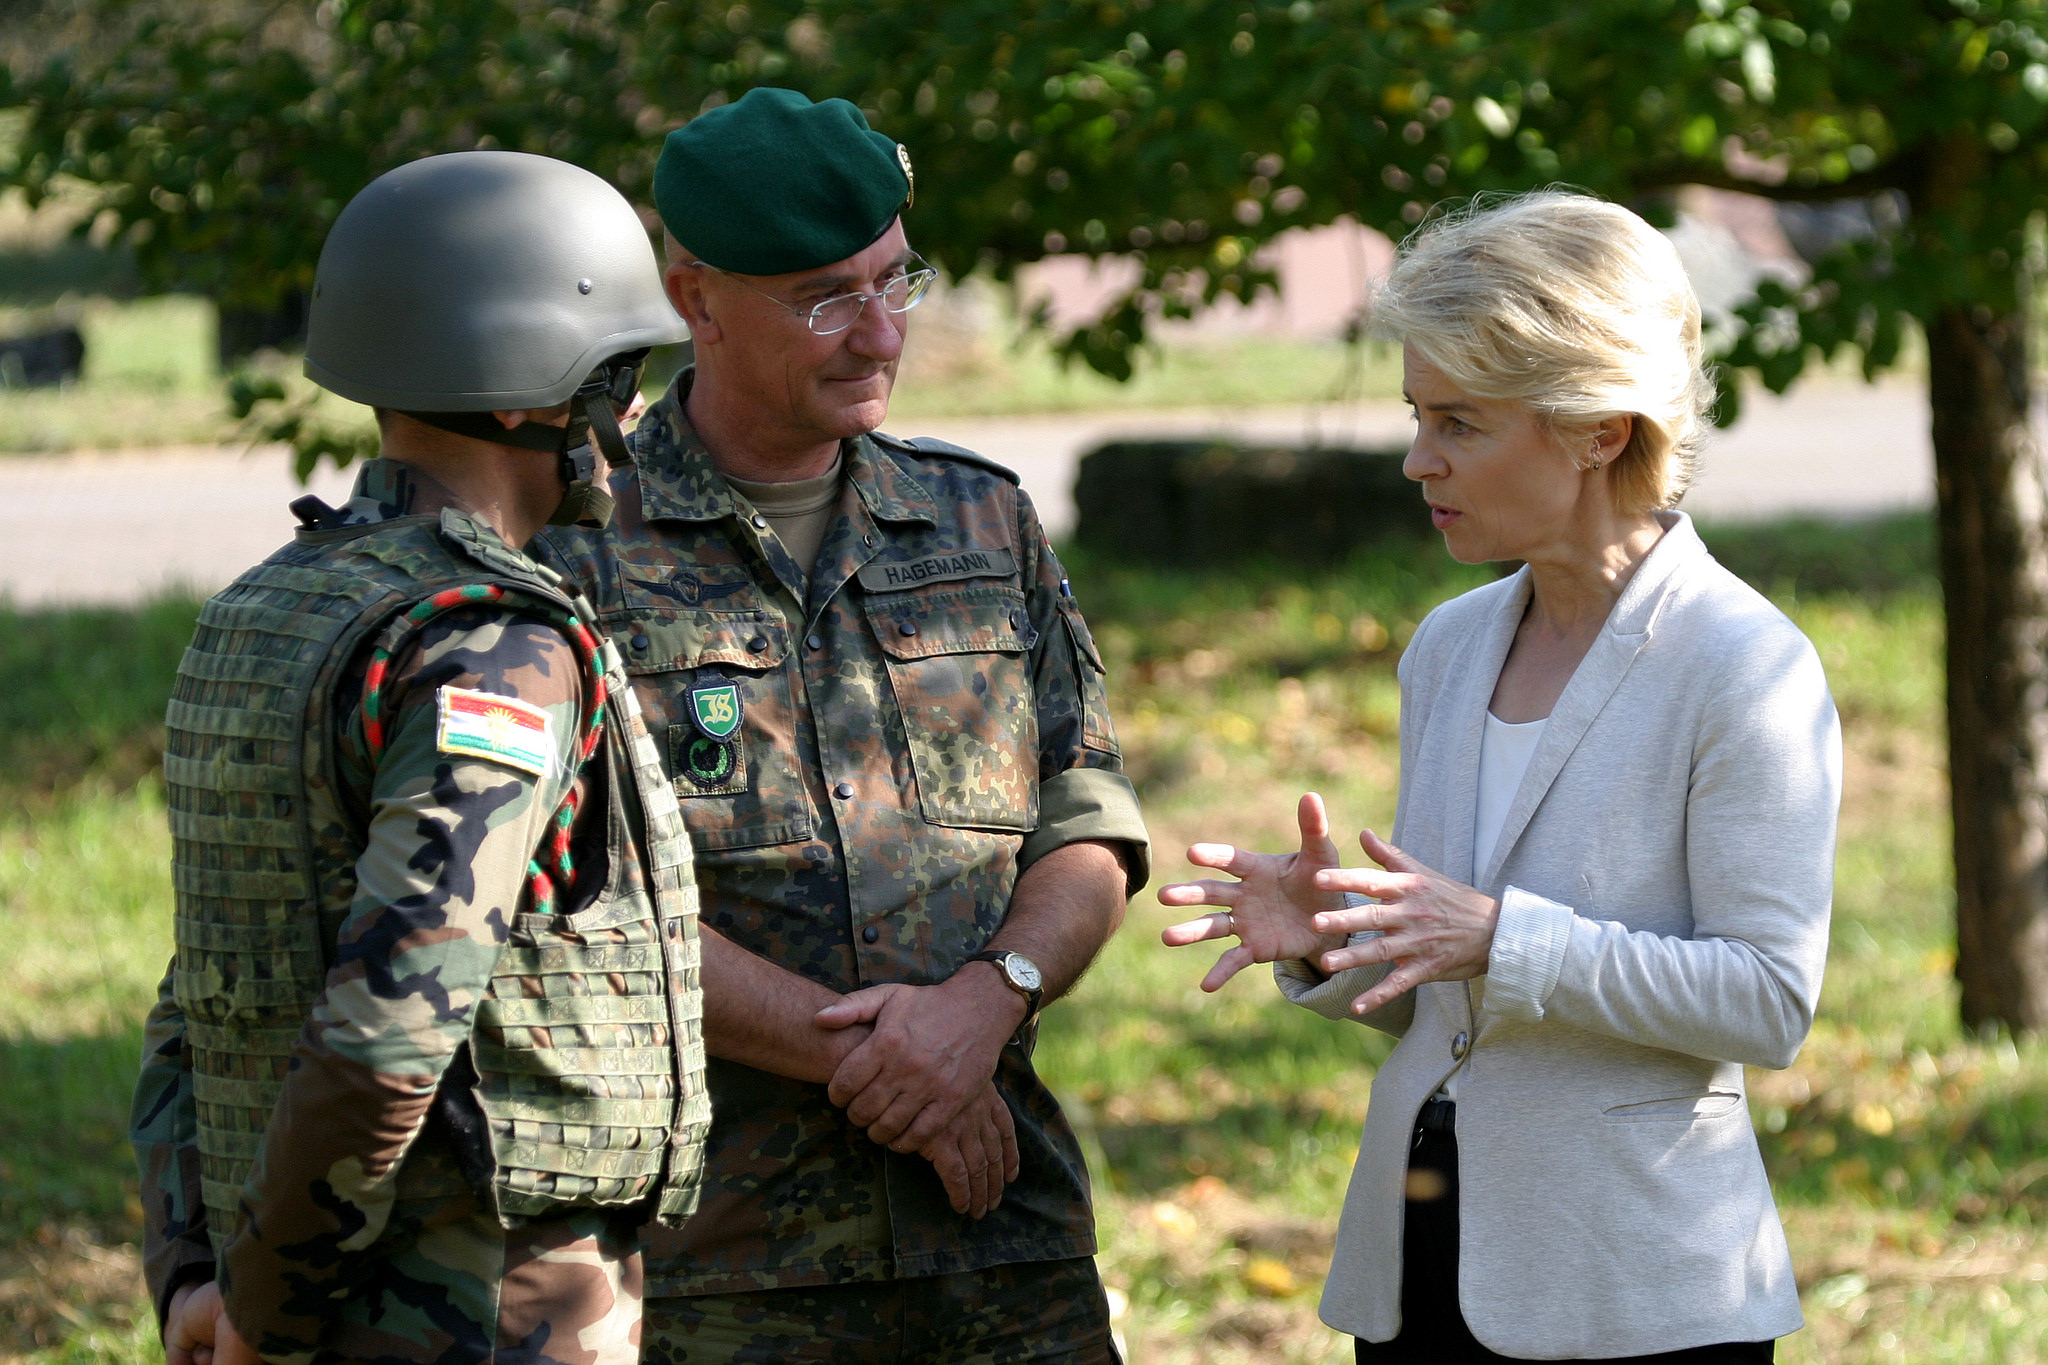 German Defense Minister Ursula von der Leyen speaks with German troops during a training exercise on 2 October, 2014. [Medien Bundeswehr/Flickr]